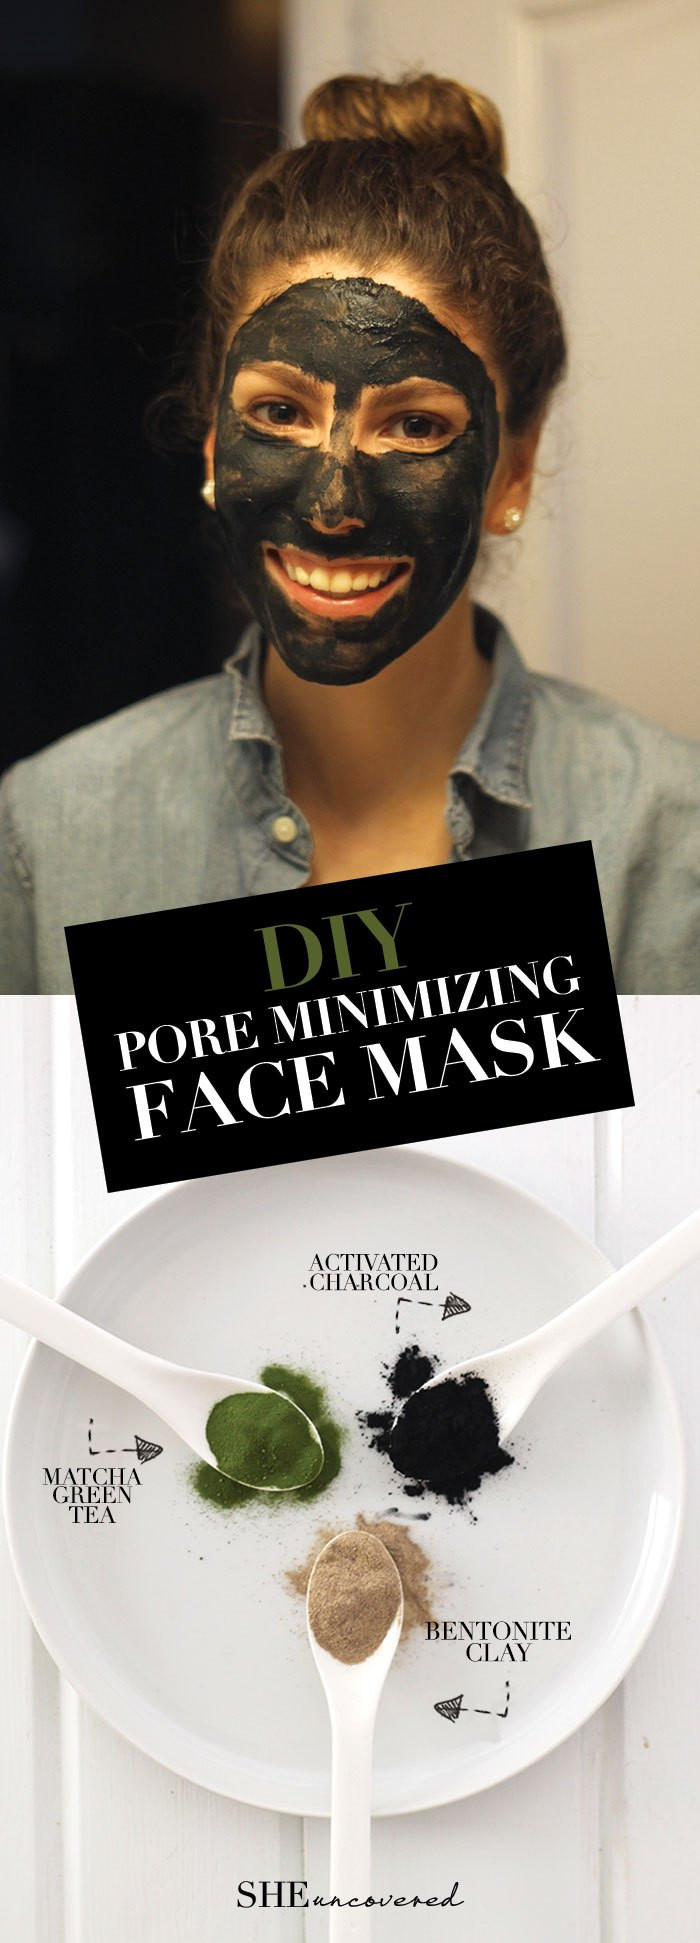 Best ideas about Pore Cleansing Mask DIY . Save or Pin DIY Pore Minimizing Face Mask • She Uncovered Now.